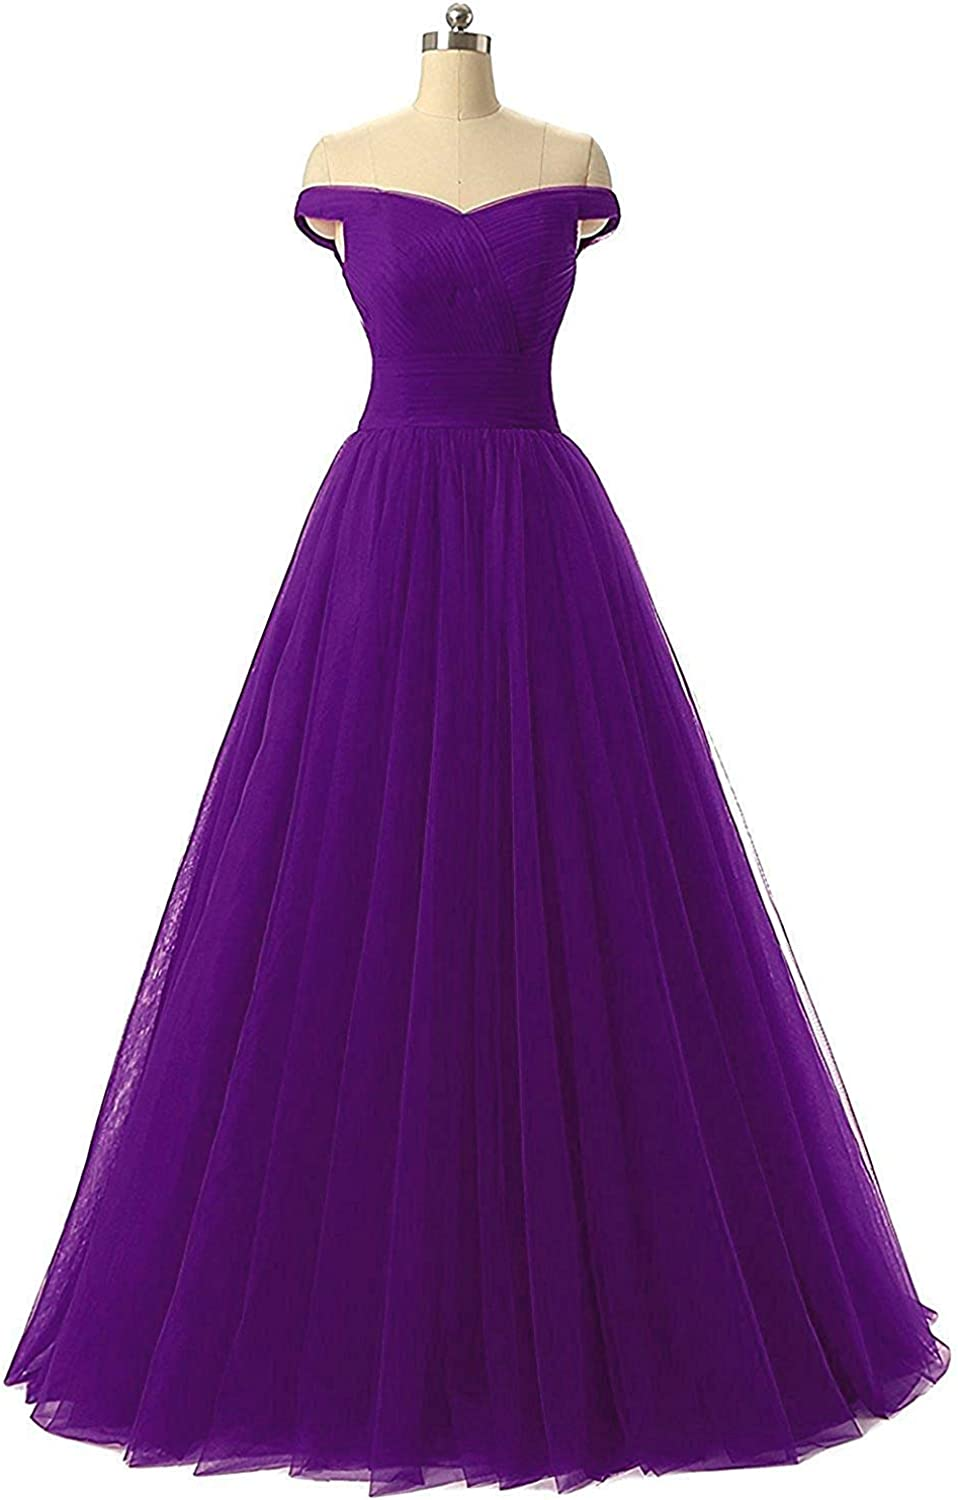 Diydress Aline Tulle Prom Formal Evening Homecoming Dress Ball Gown